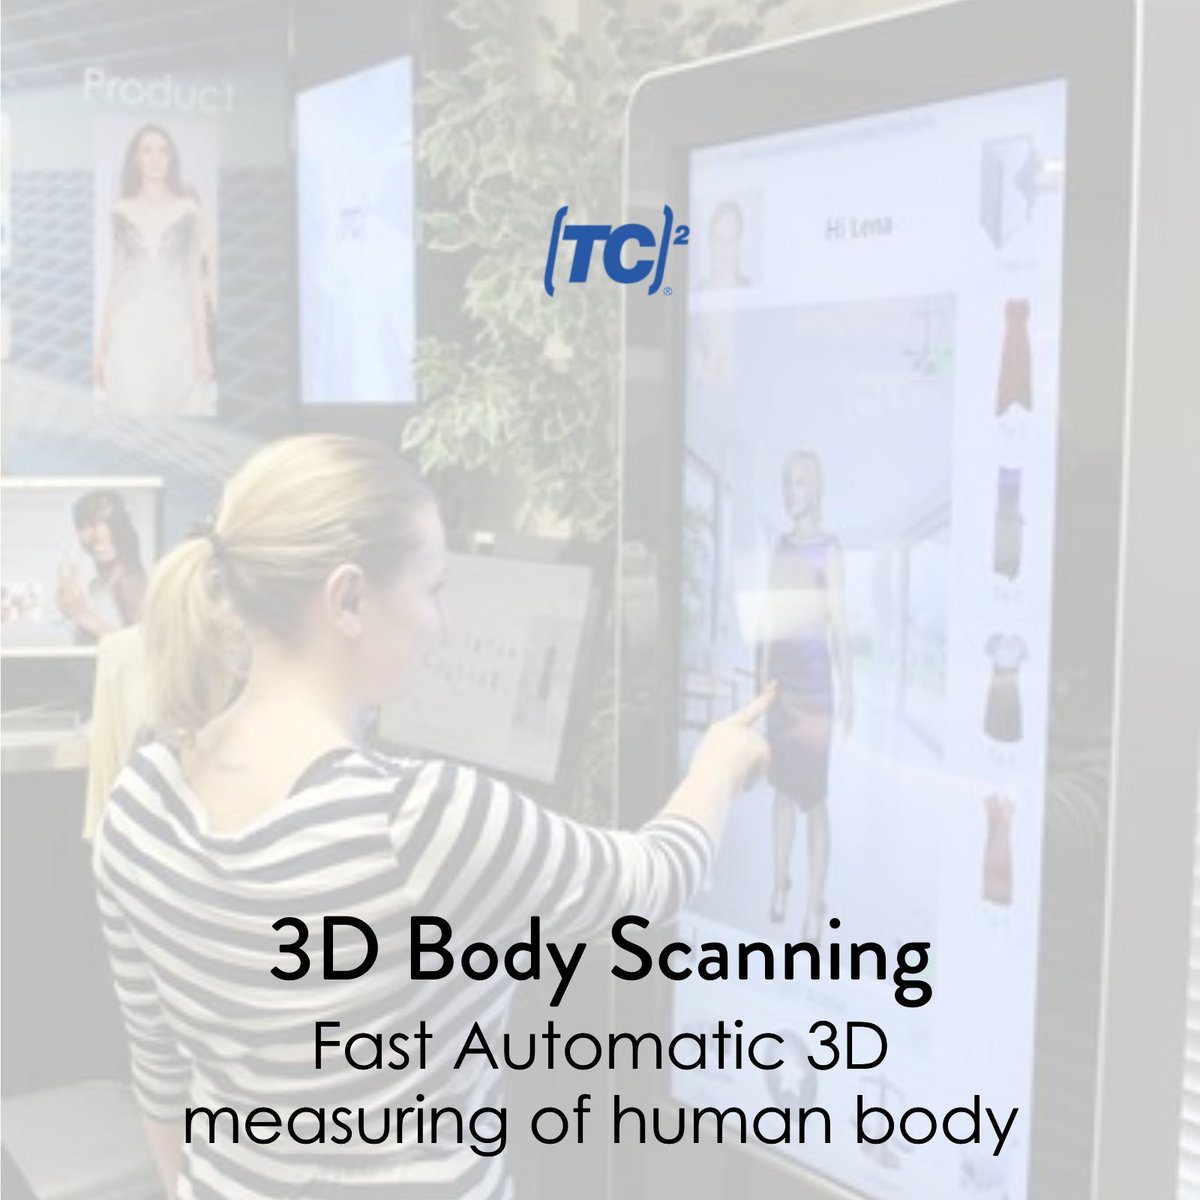 Body scanning and measuring now made not only easy but also more accurate and fast. Know More >>    #MobileScanner #3DTechnology #Fashion #3DServices #3DScanners #NewDimension #Tc2 #USA #LatestTechnology #US #latesttrends #fittingsolution